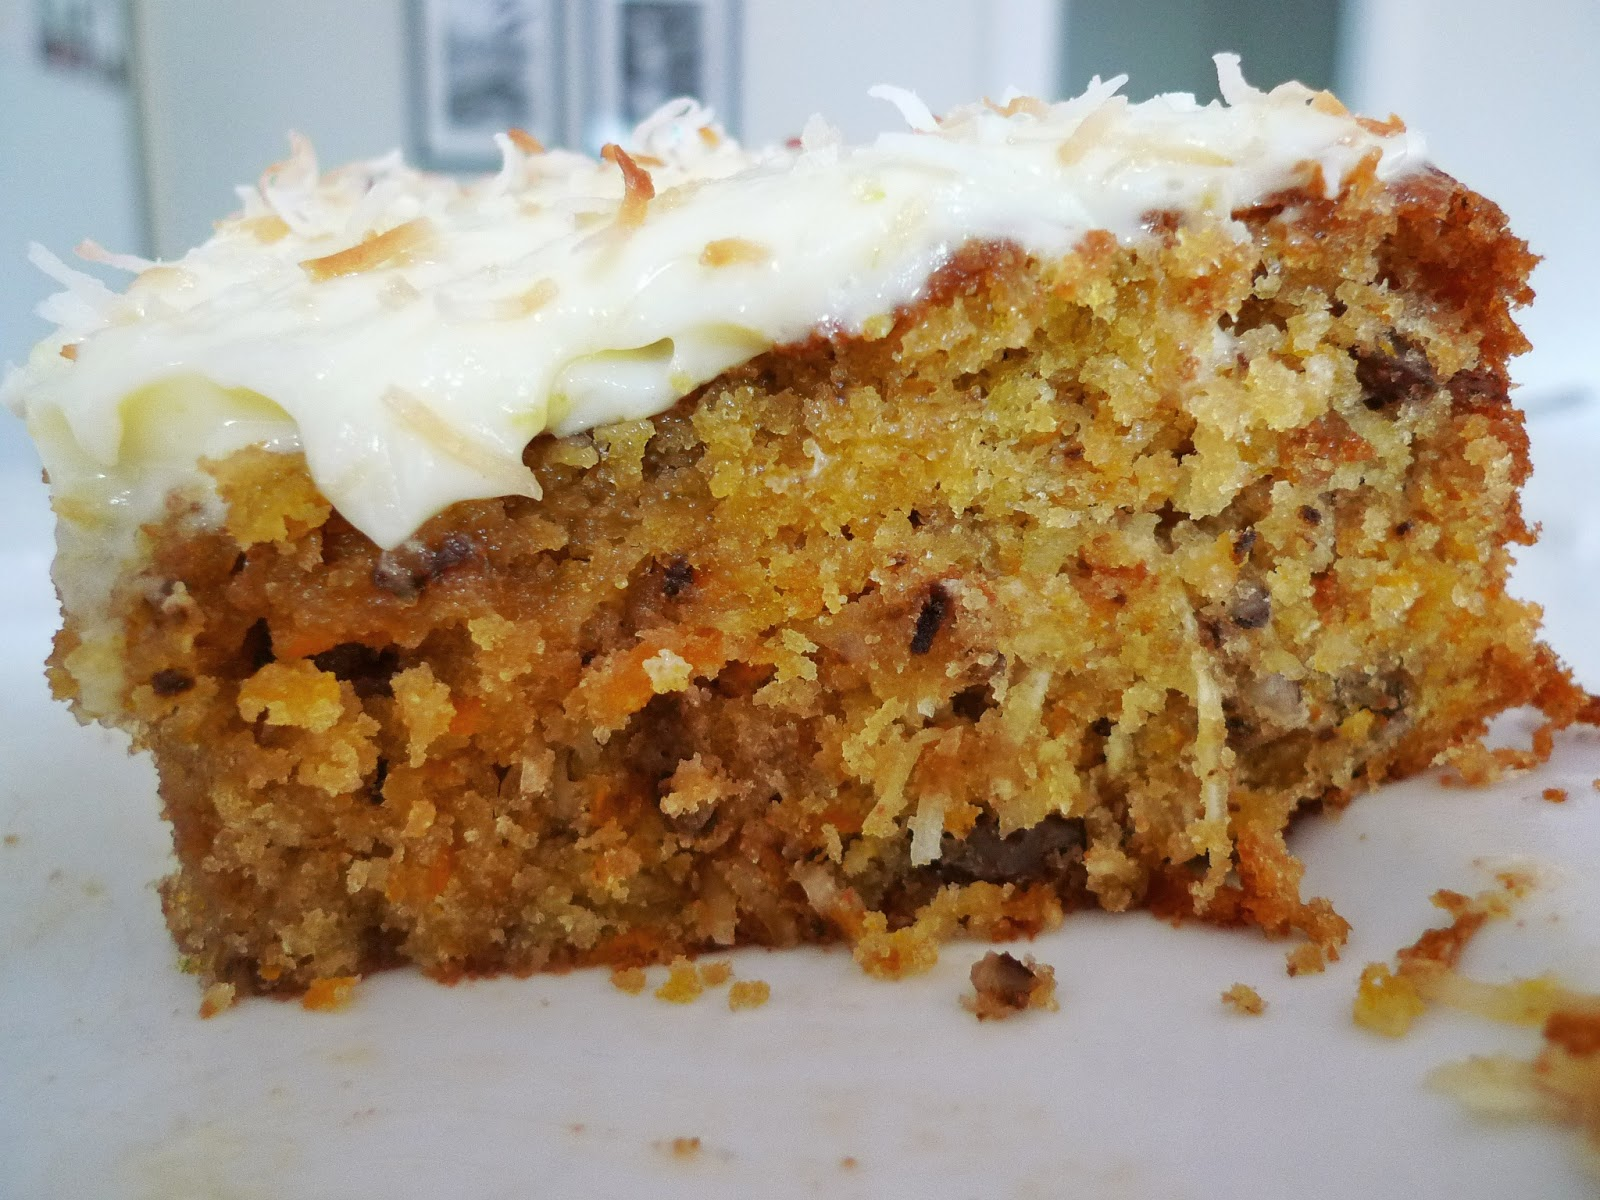 Windle Valley Runners - Out & About: Yummy Carrot Cake ...